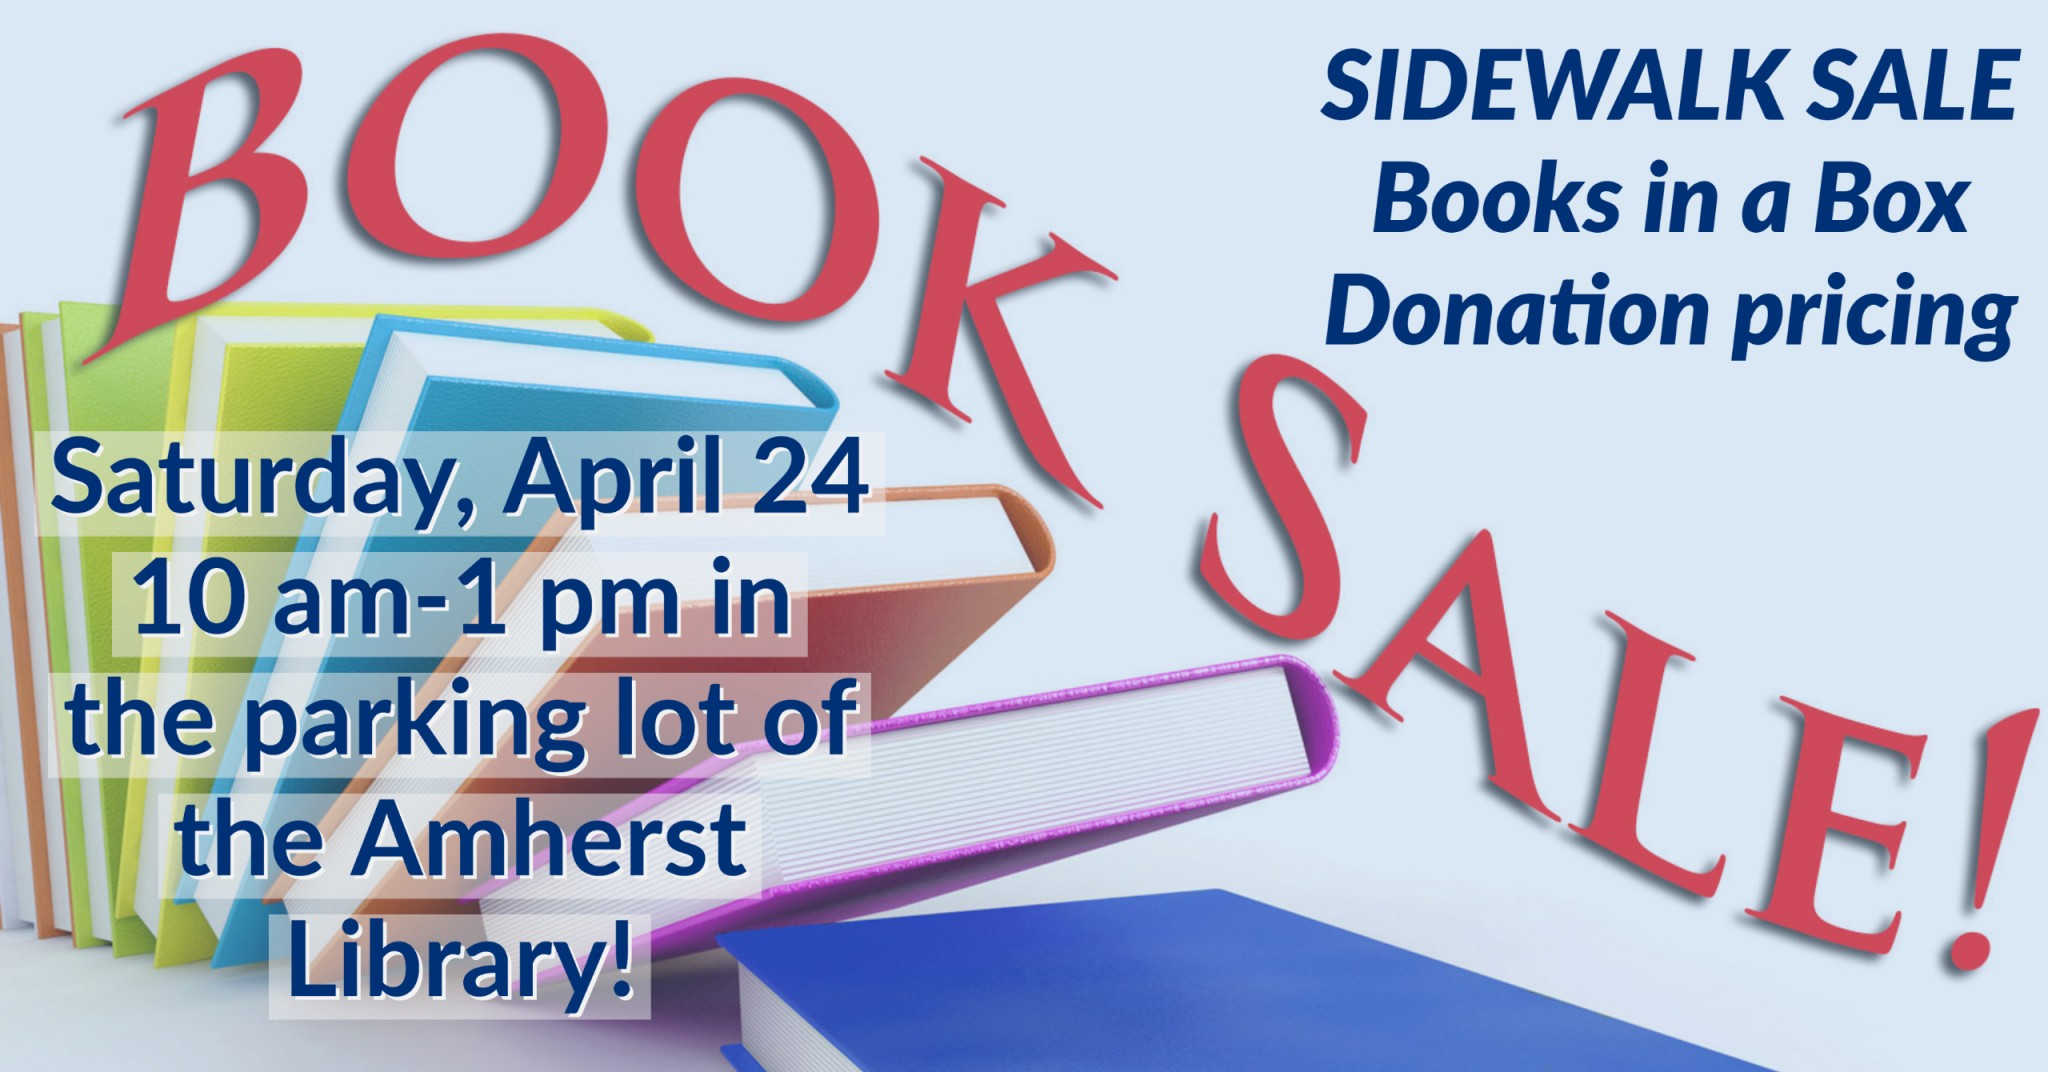 BOOK SALE! Sidewalk Sale, Books in a Box, Donation pricing. Saturday, April 24 10 am-1 pm in the parking lot of the Amherst Library!